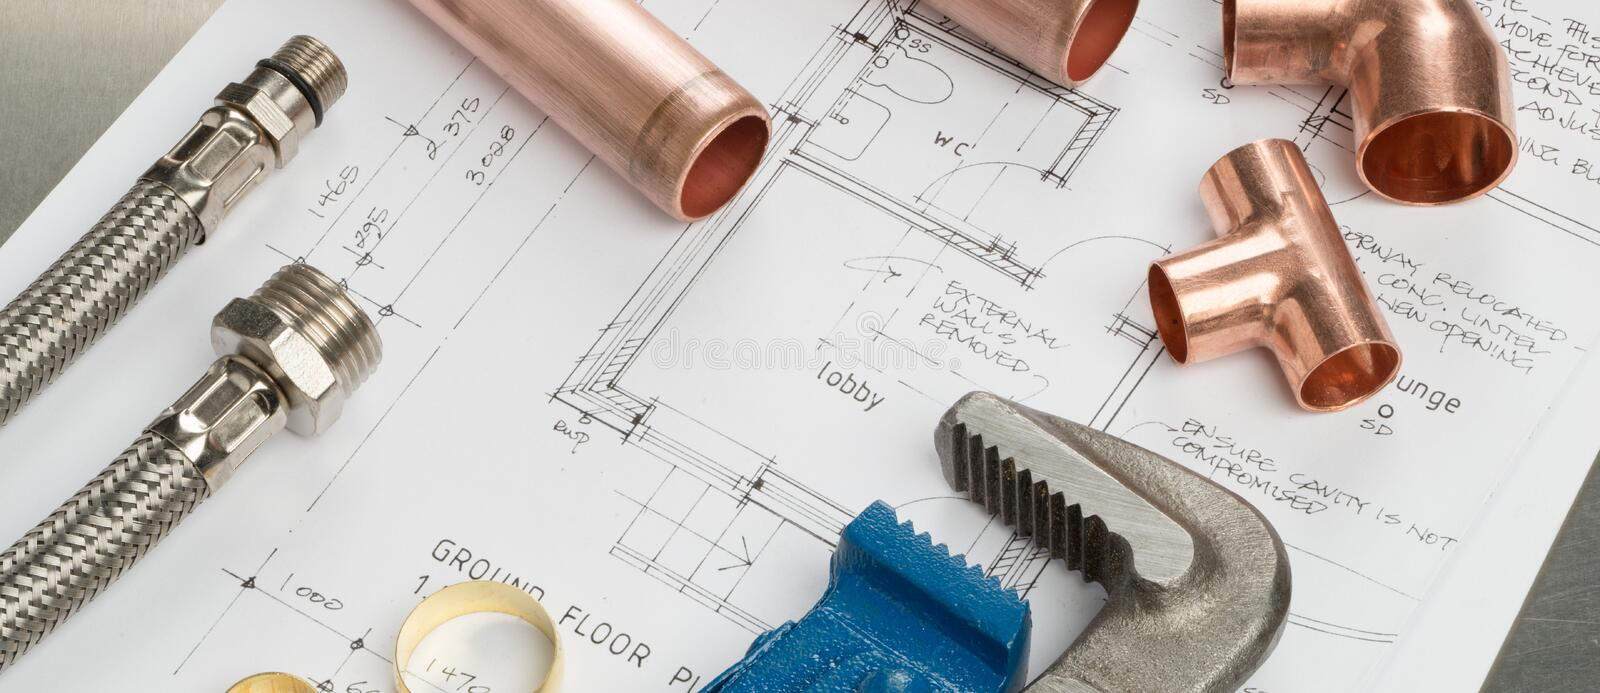 Plumbers Tools and Plumbing Materials Banner on House Plans stock photography